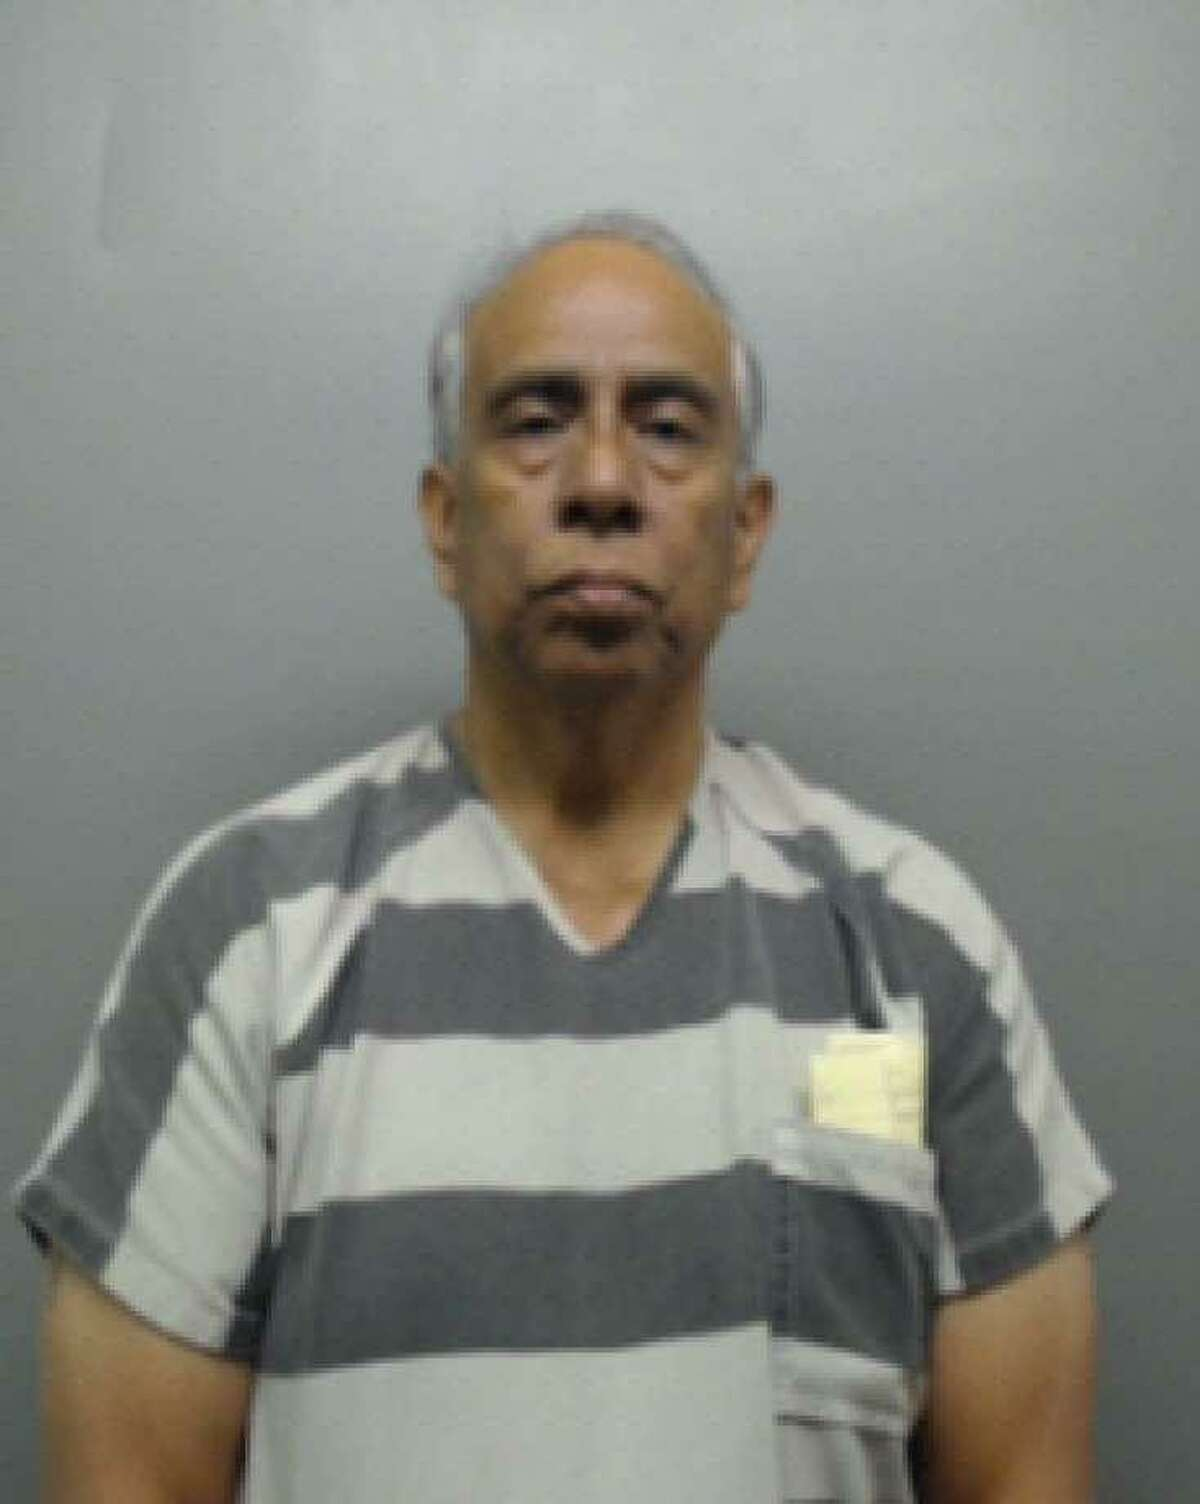 Antonio Salinas, 65, agreed to serve two years for the first count in the Texas Department of Criminal Justice. He also agreed to 10 years probated for 10 years with 600 hours of community service.